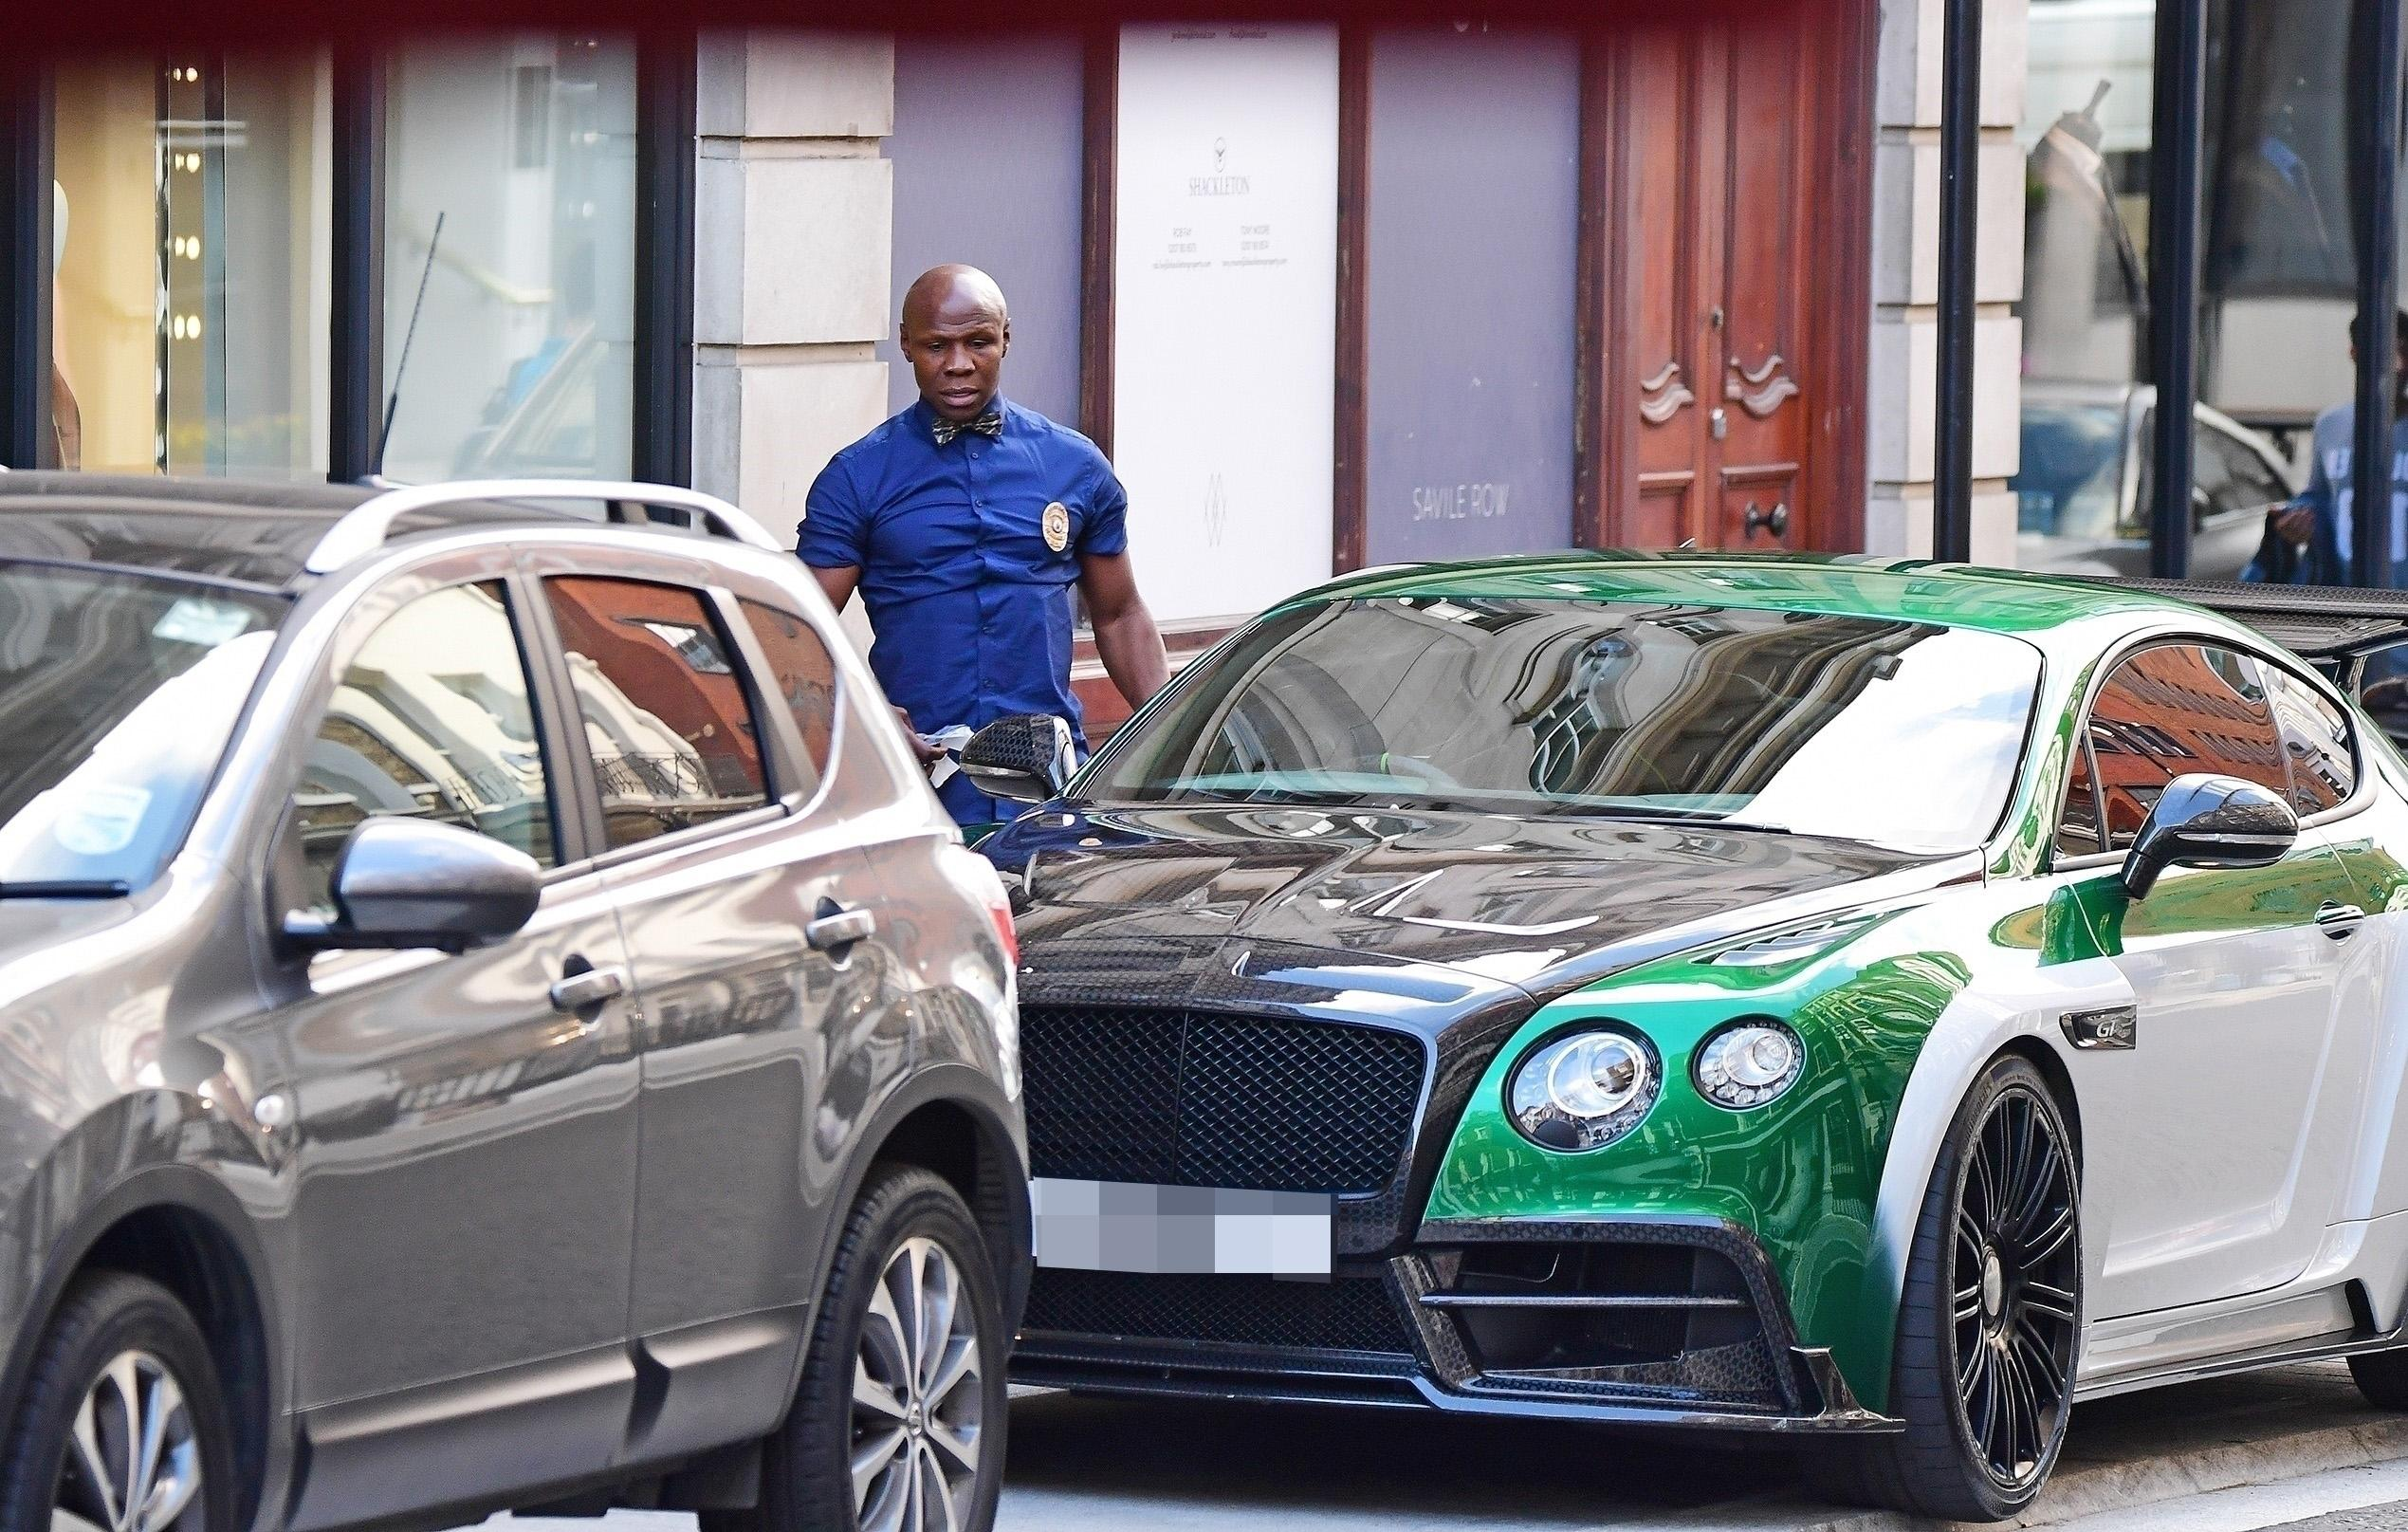 Chris Eubank ensured he had heads turning as he turned up on Savile Row in his flash Bentley